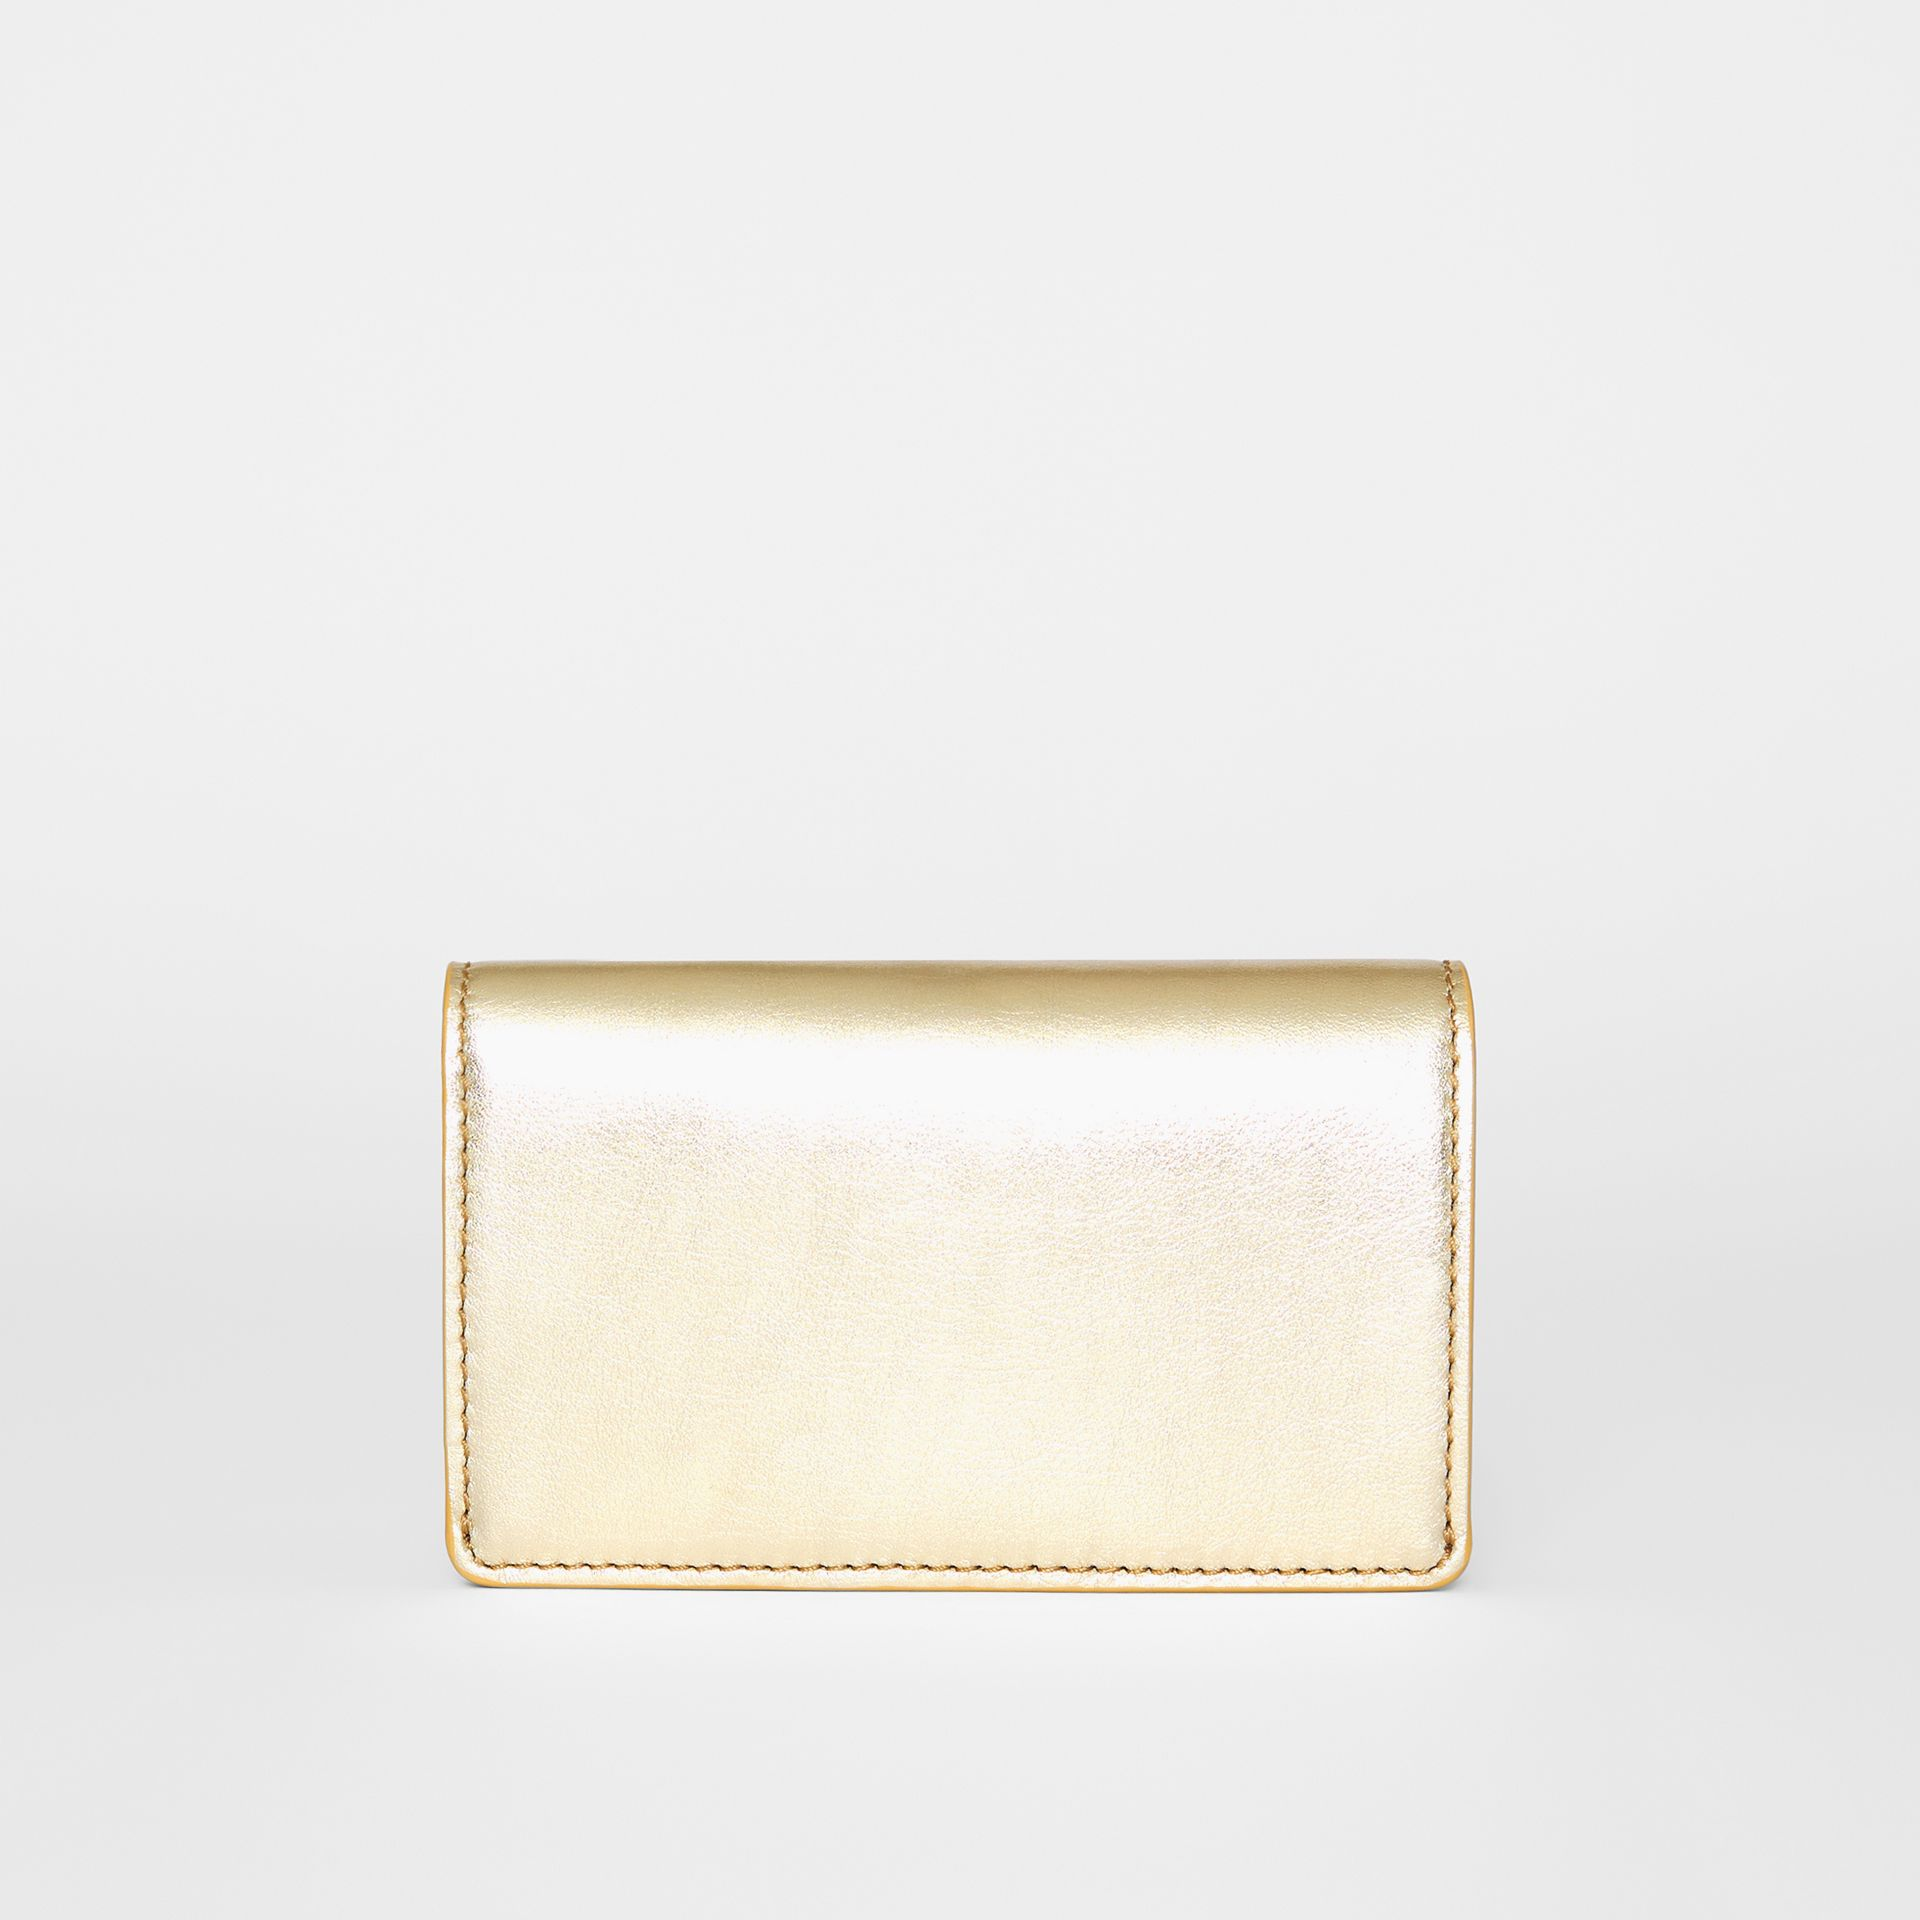 Small Embossed Crest Metallic Leather Wallet in Gold - Women | Burberry United Kingdom - gallery image 5